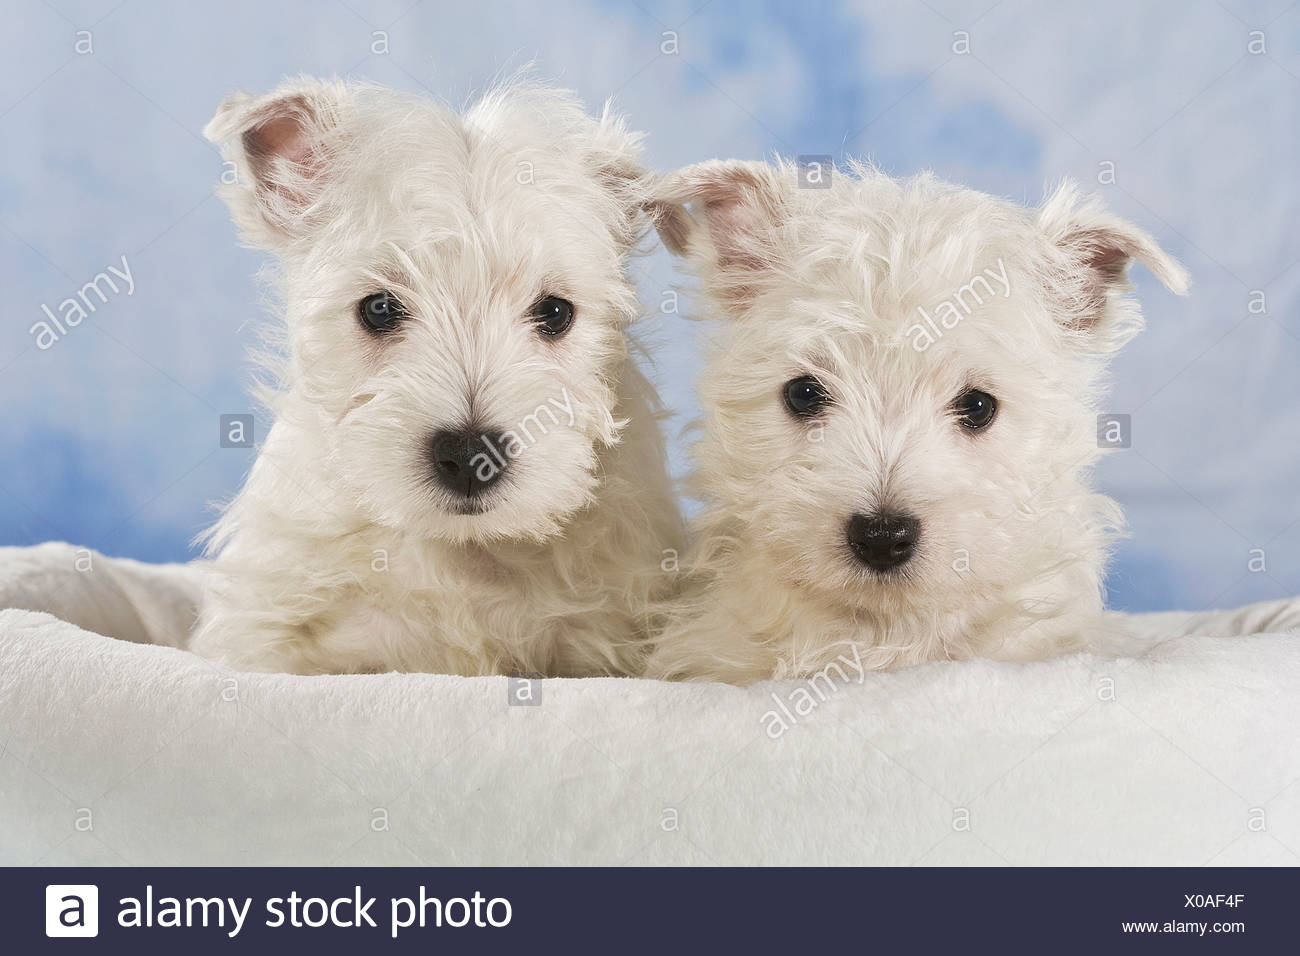 Two West Highland White Terriers, Westie puppies - Stock Image